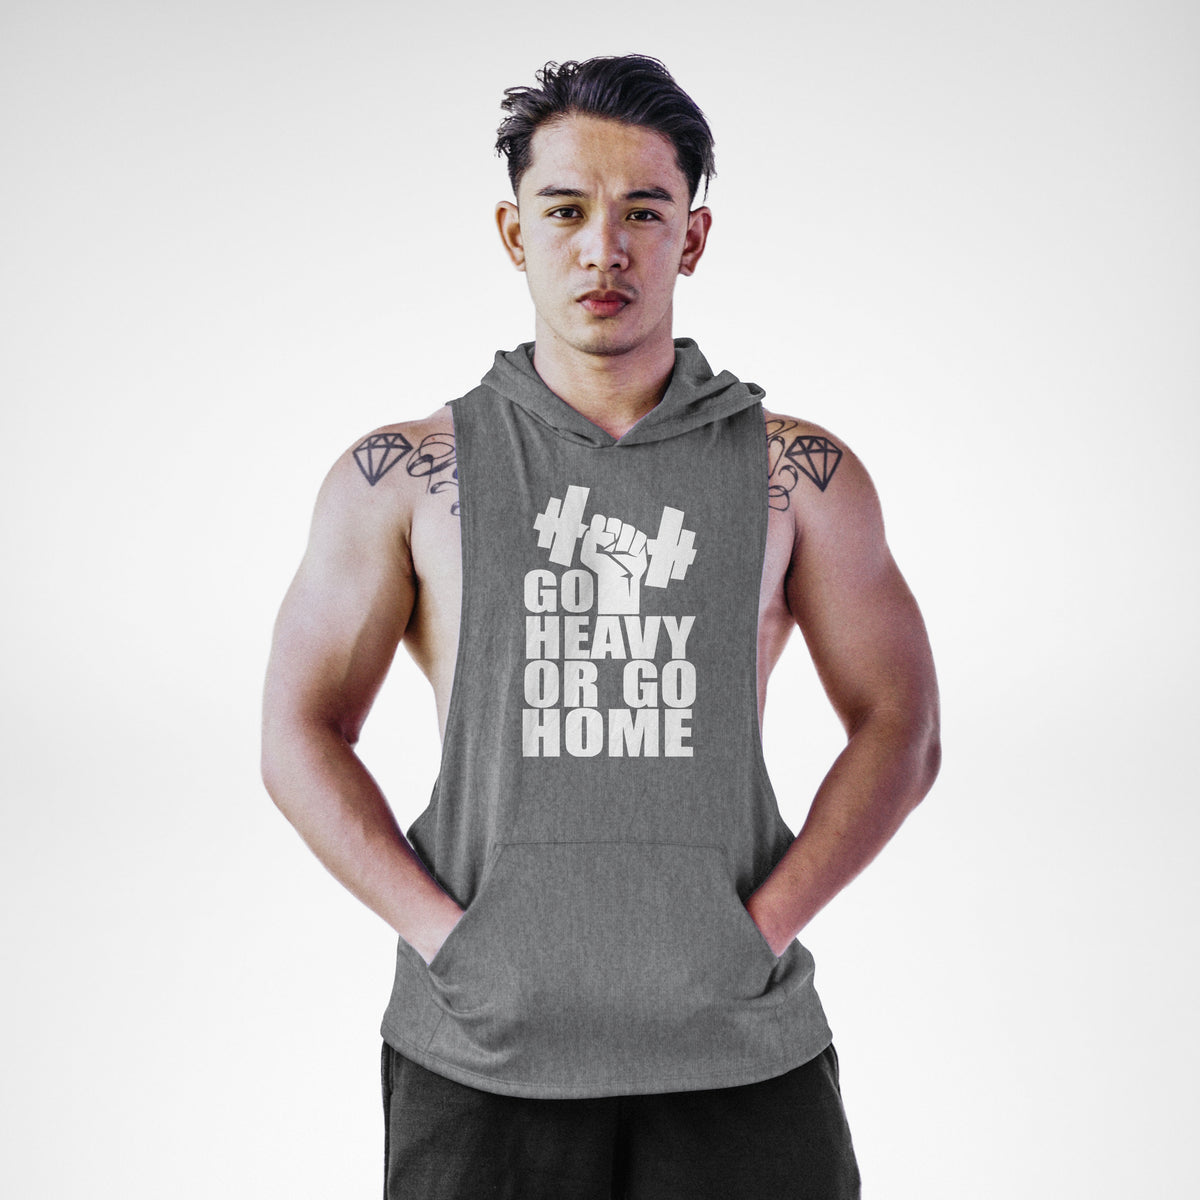 AH108 Go Heavy or Go Home Sleeveless Hoodie